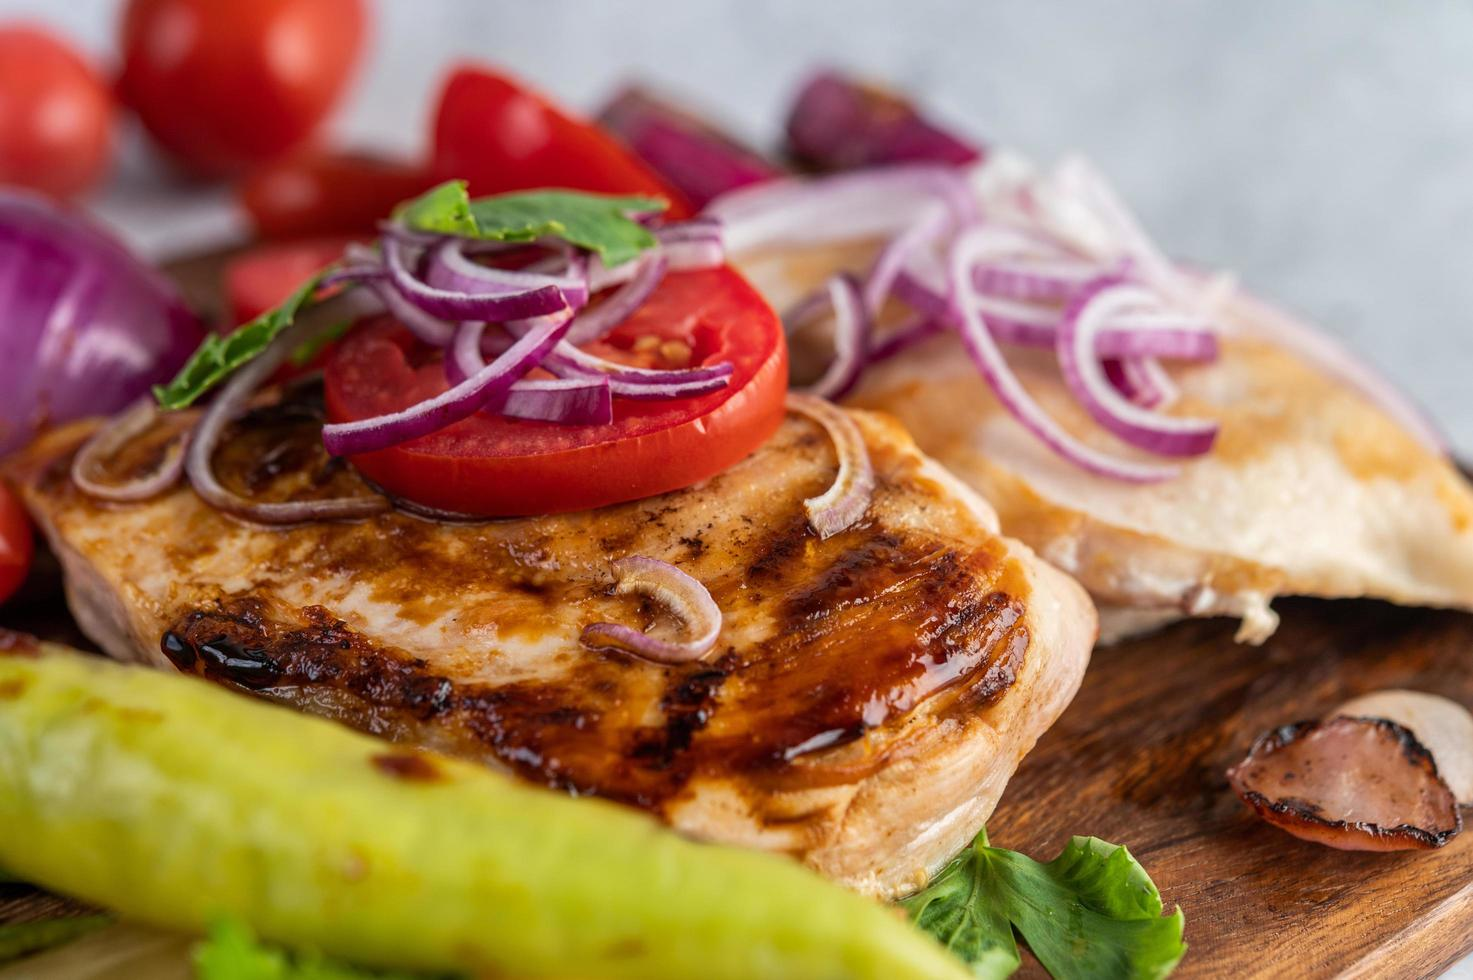 Chicken steak with roasted vegetables photo